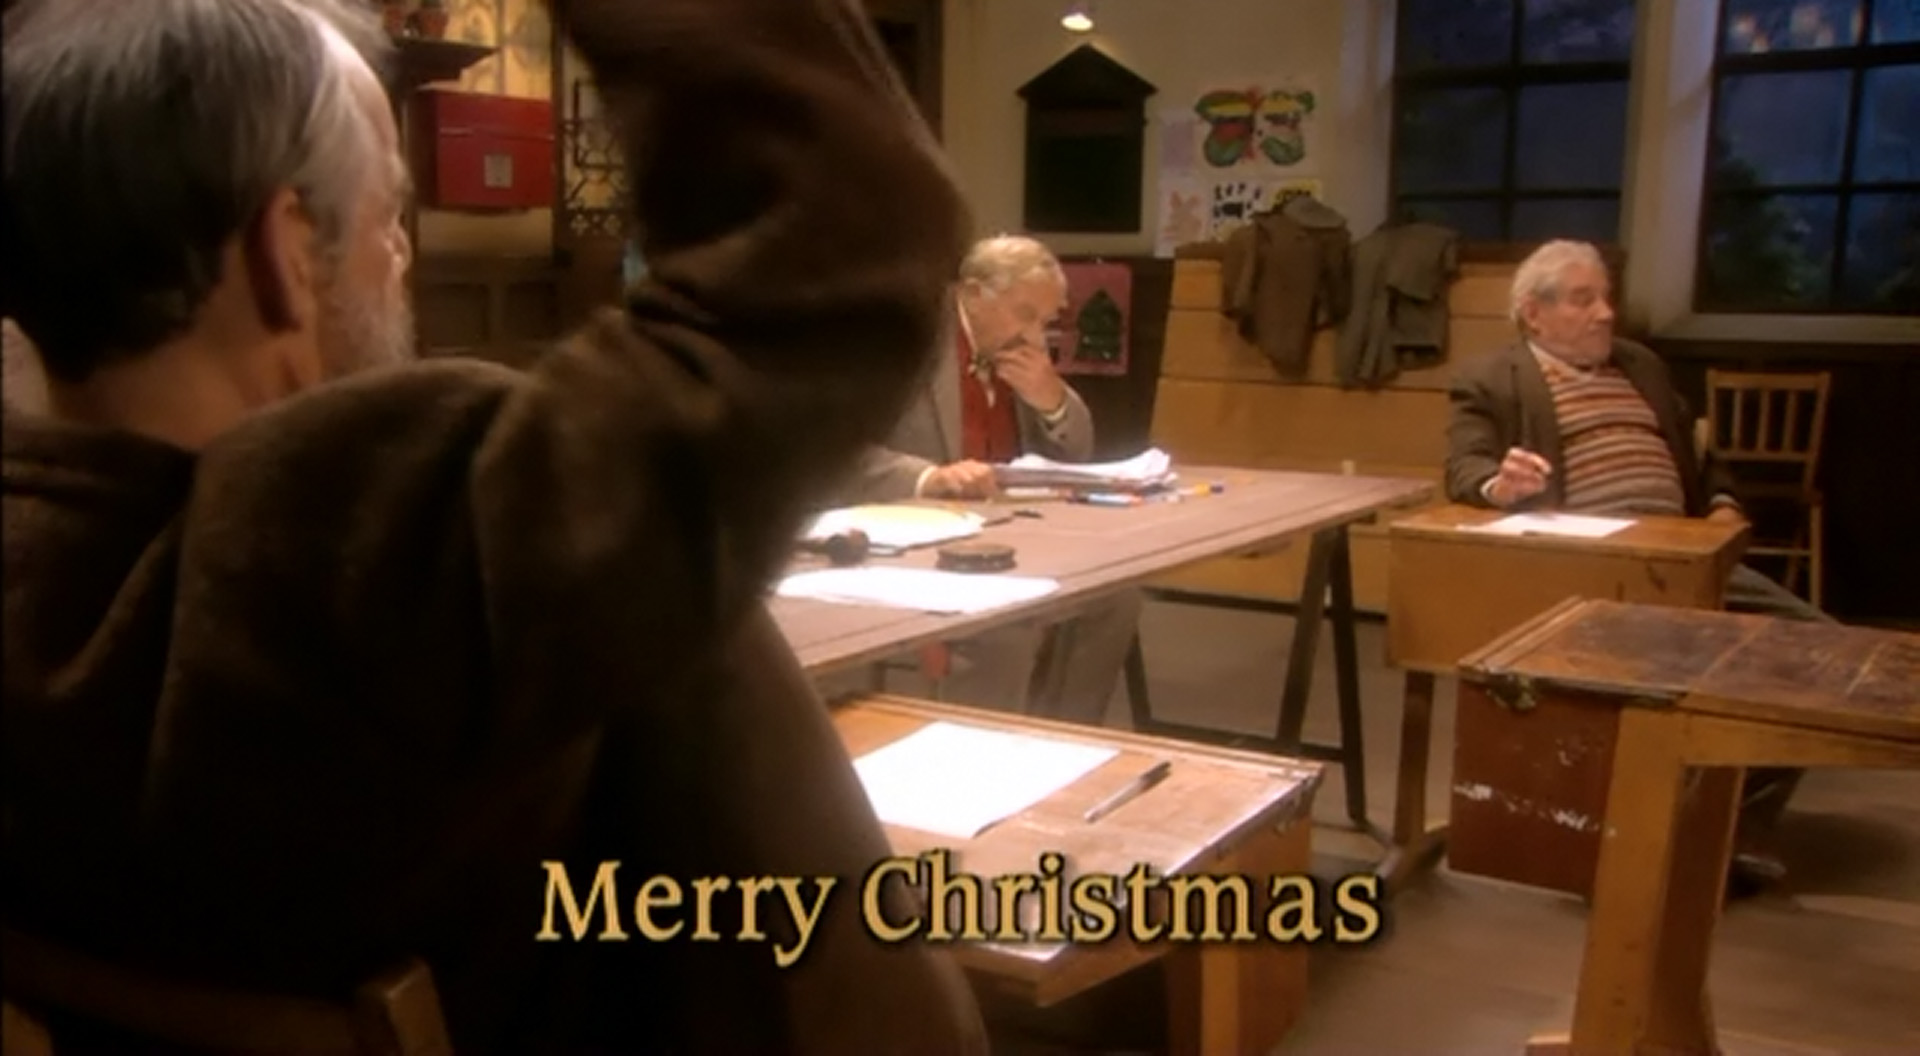 Merry Christmas | The Vicar of Dibley